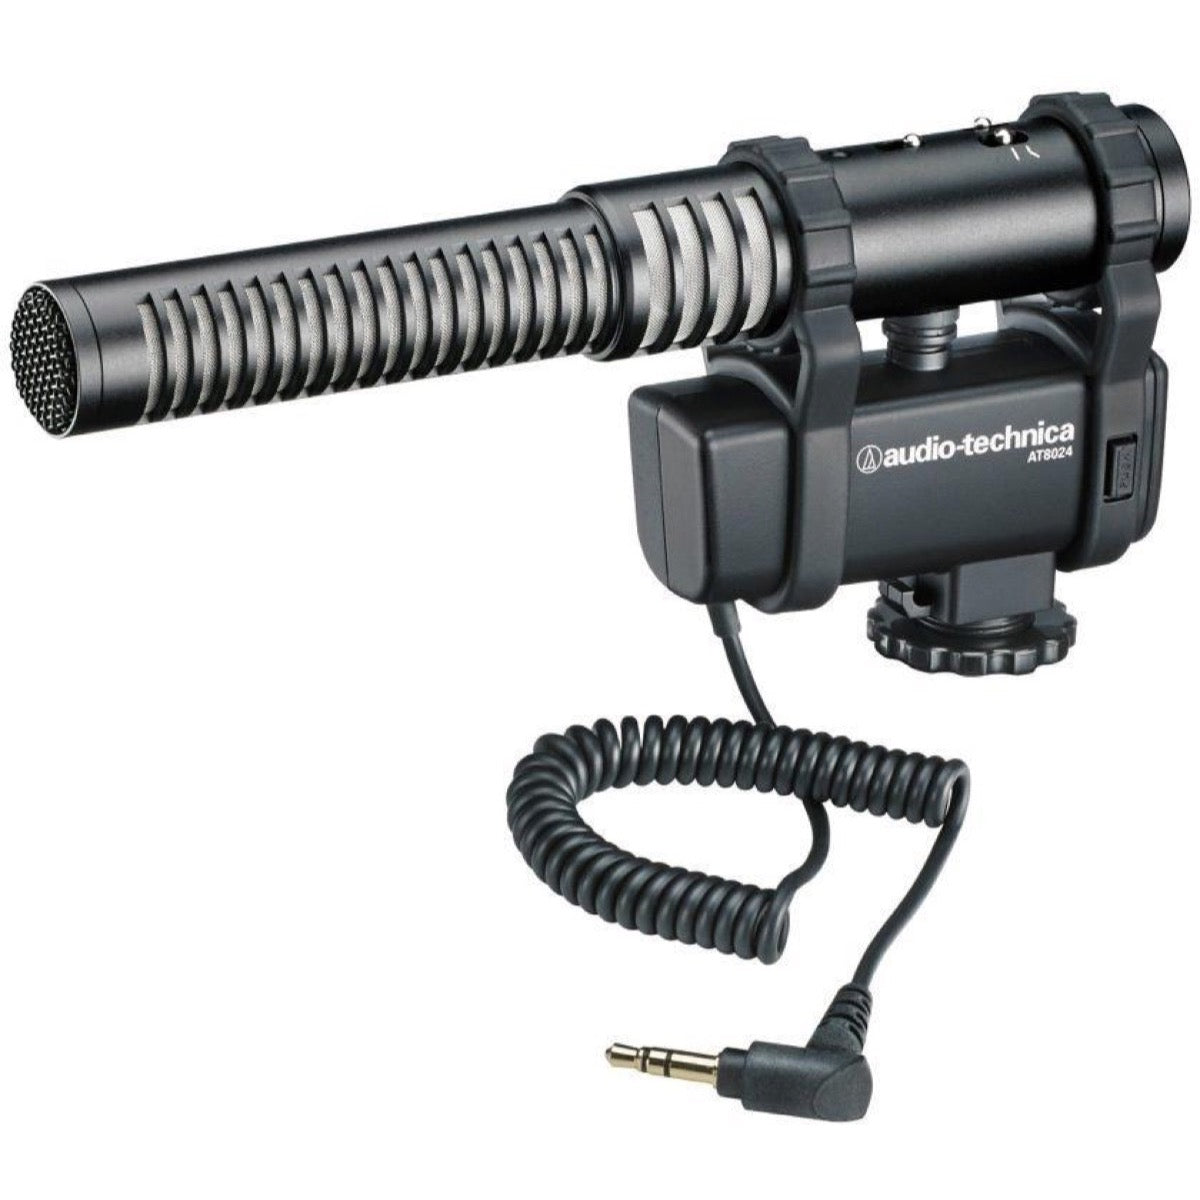 Audio-Technica AT8024 MonoStereo Camera Mount Microphone